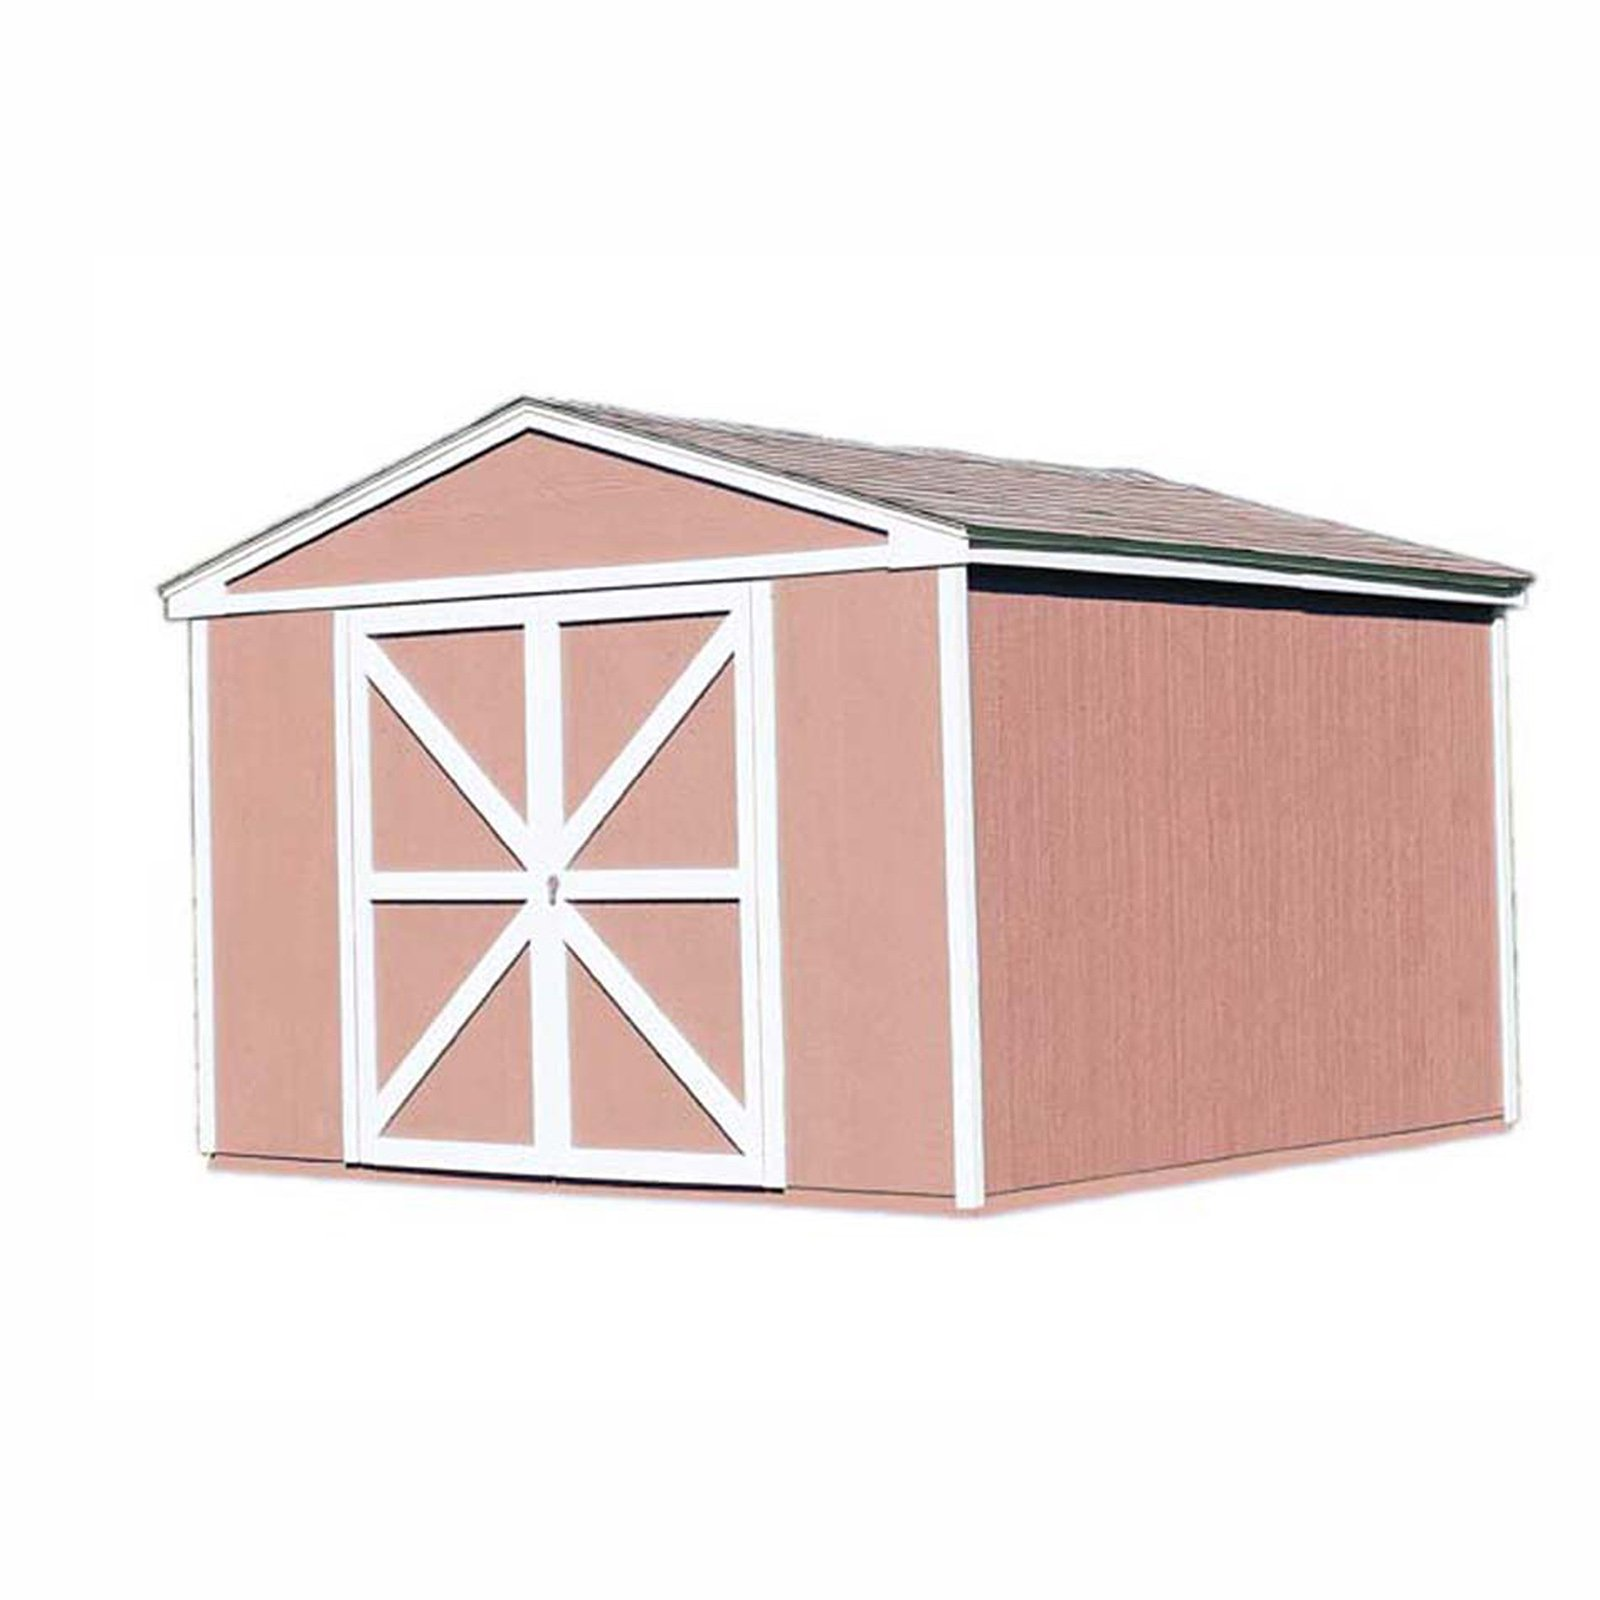 Handy Home Somerset Storage Shed - 10 x 12 ft.